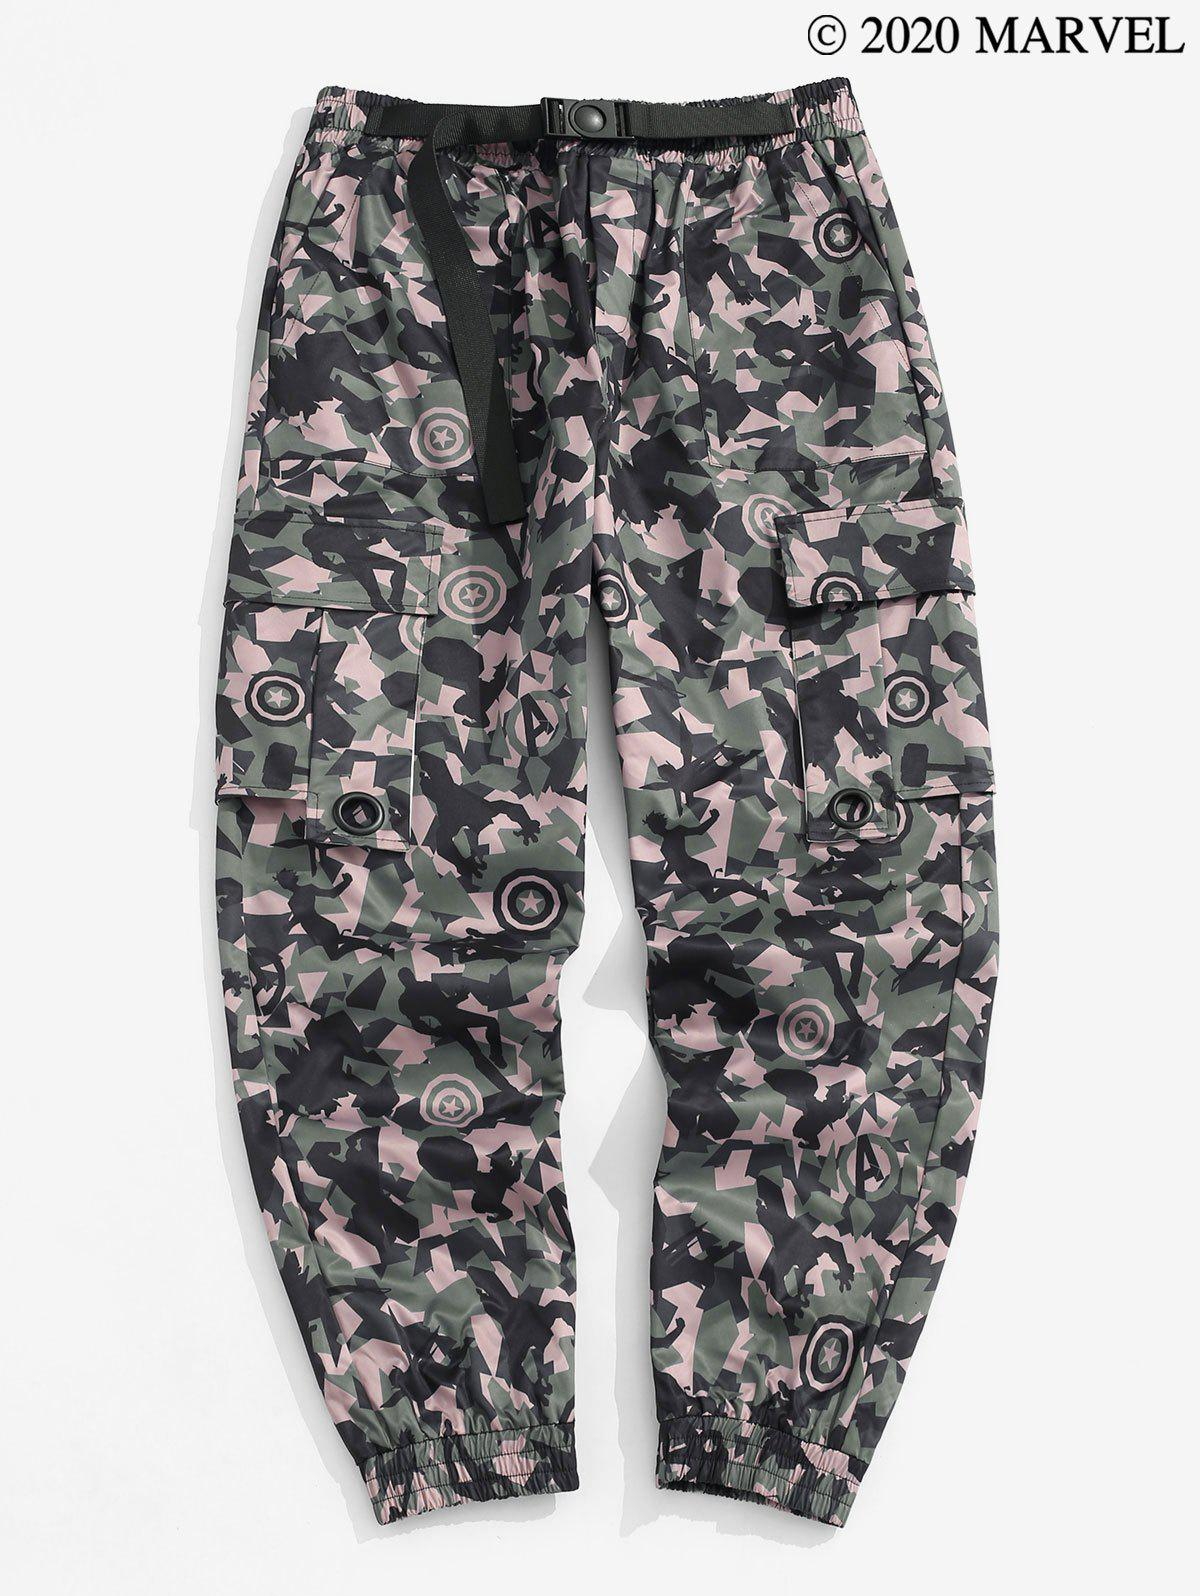 Marvel Spider-Man Camouflage Print Tapered Cargo Pants - WOODLAND CAMOUFLAGE XL